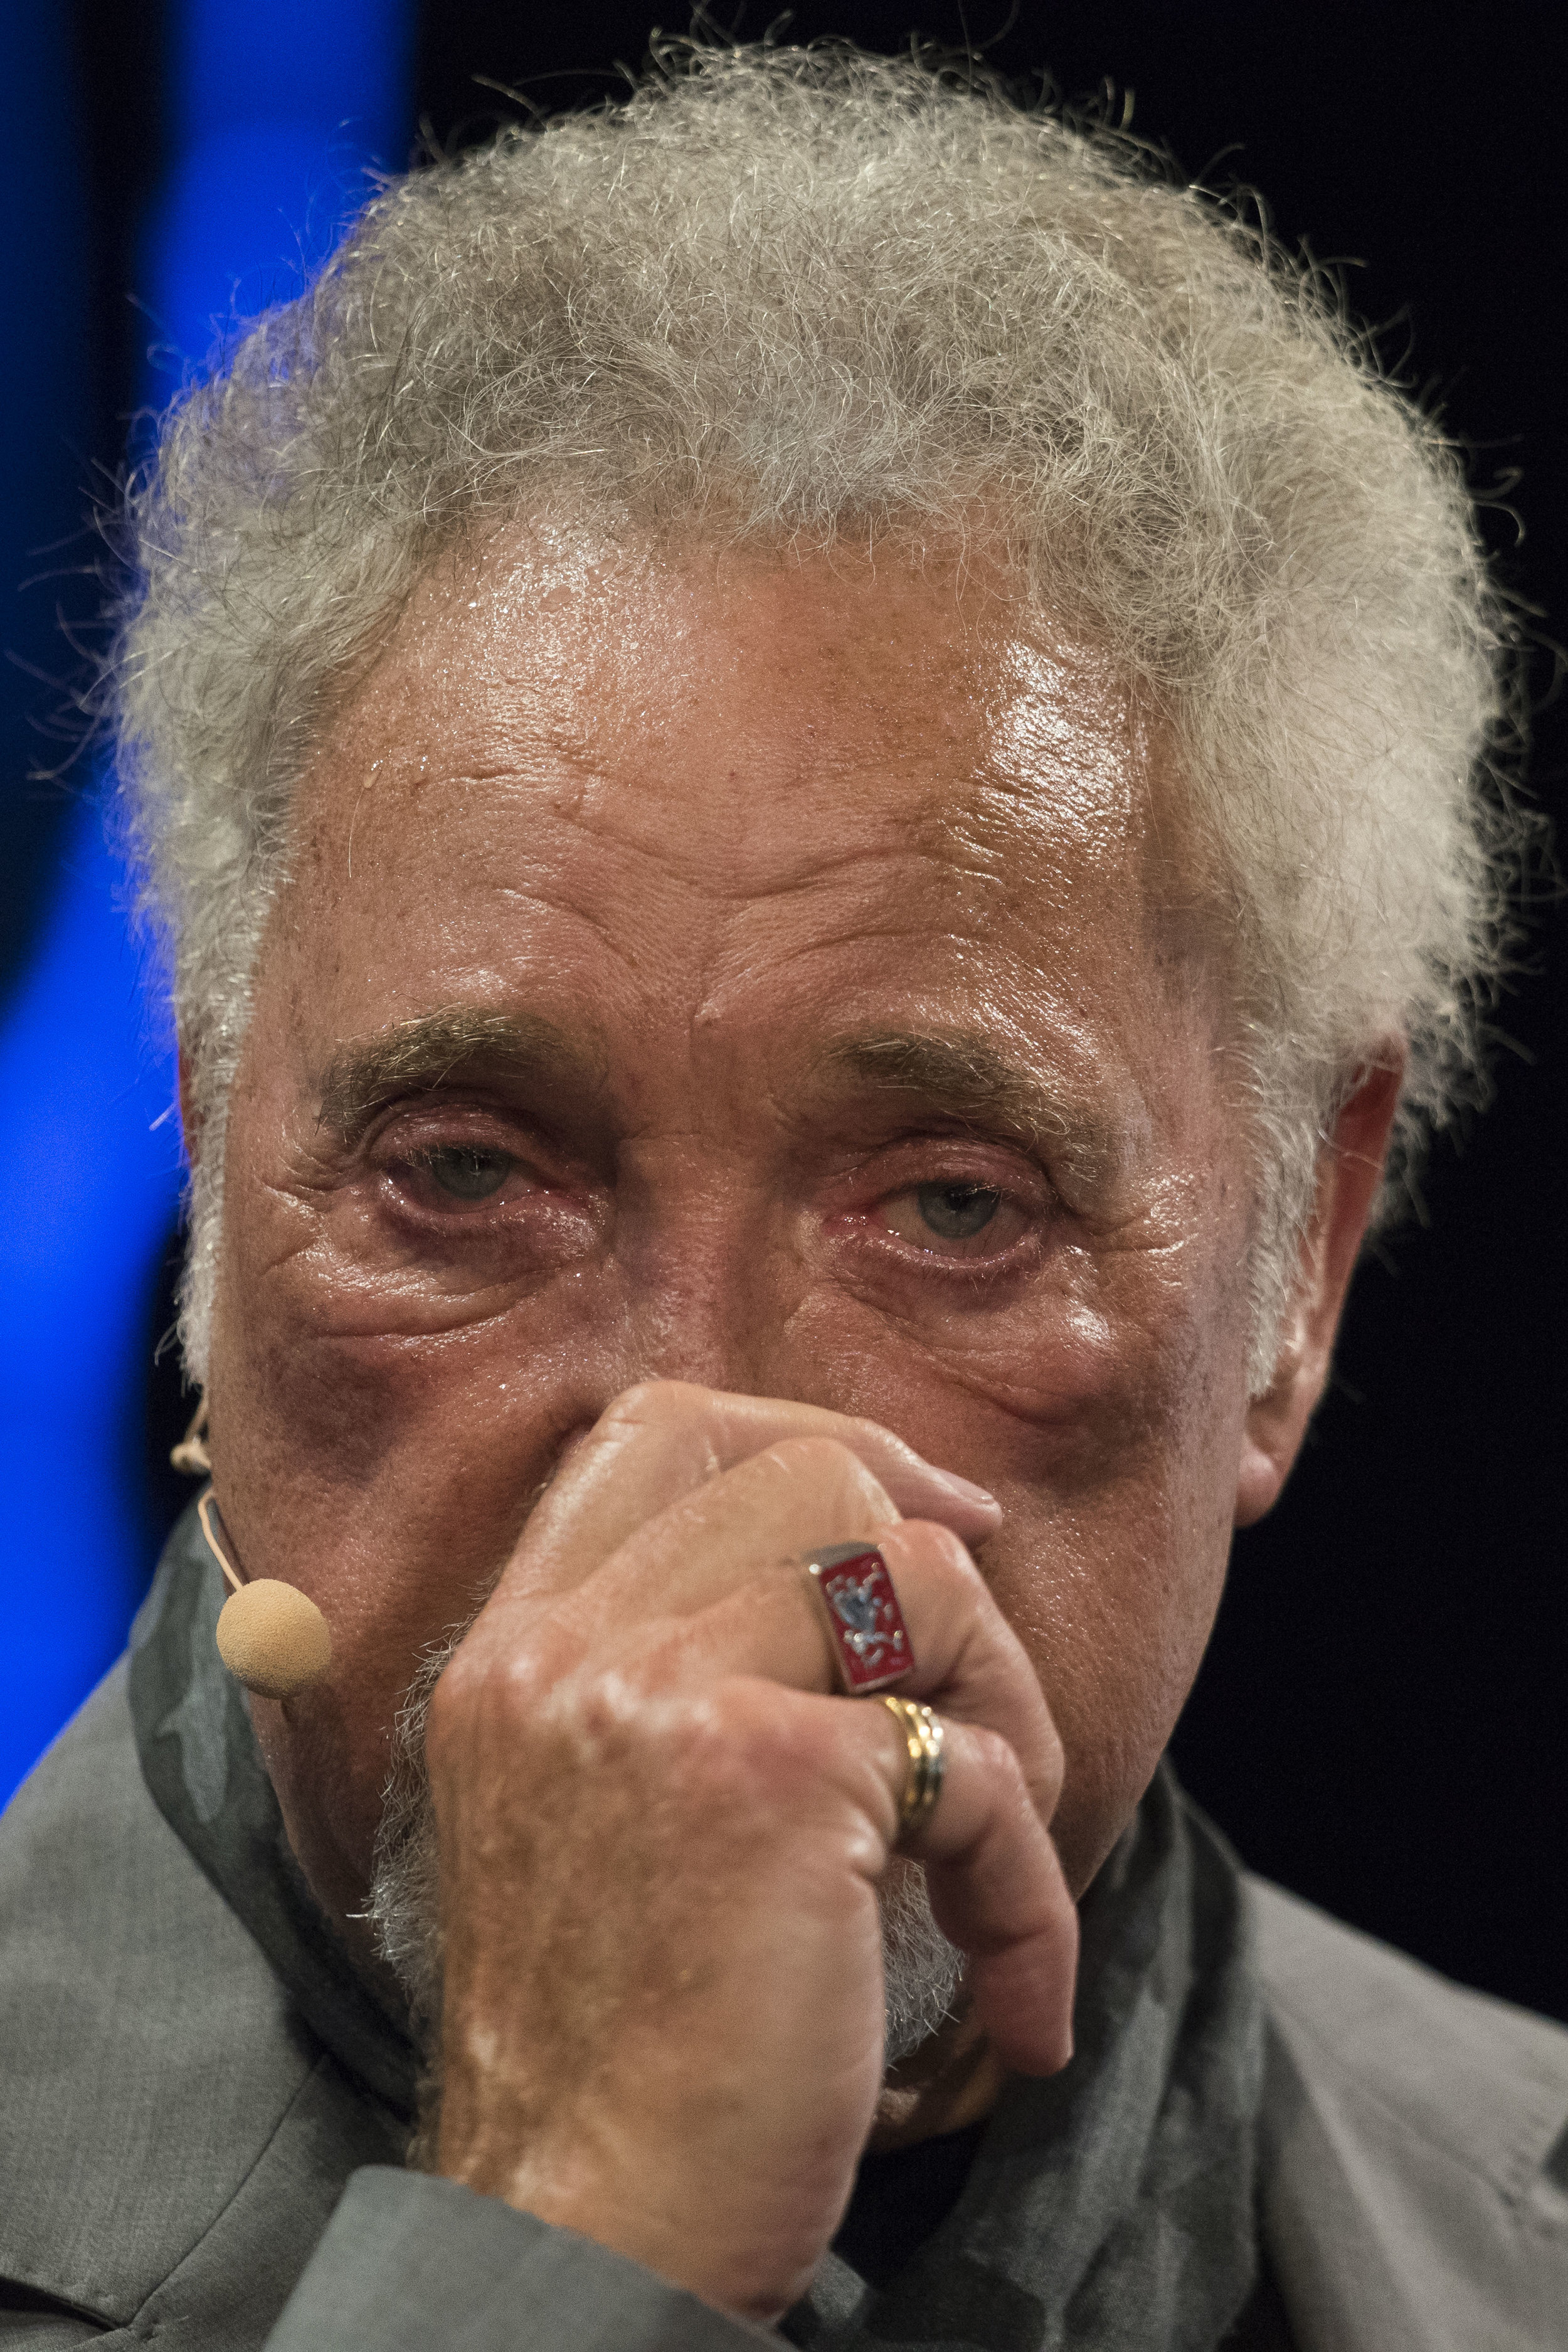 HAY-ON-WYE, WALES - JUNE 05:Sir Tom Jones speaks during the 2016 Hay Festival on June 5, 2016 in Hay-on-Wye, Wales. This is the Welsh singer�s first public appearance since the death of his wife Lady Melinda Rose Woodward who died on April 10, 2016.(Photo by Matthew Horwood)